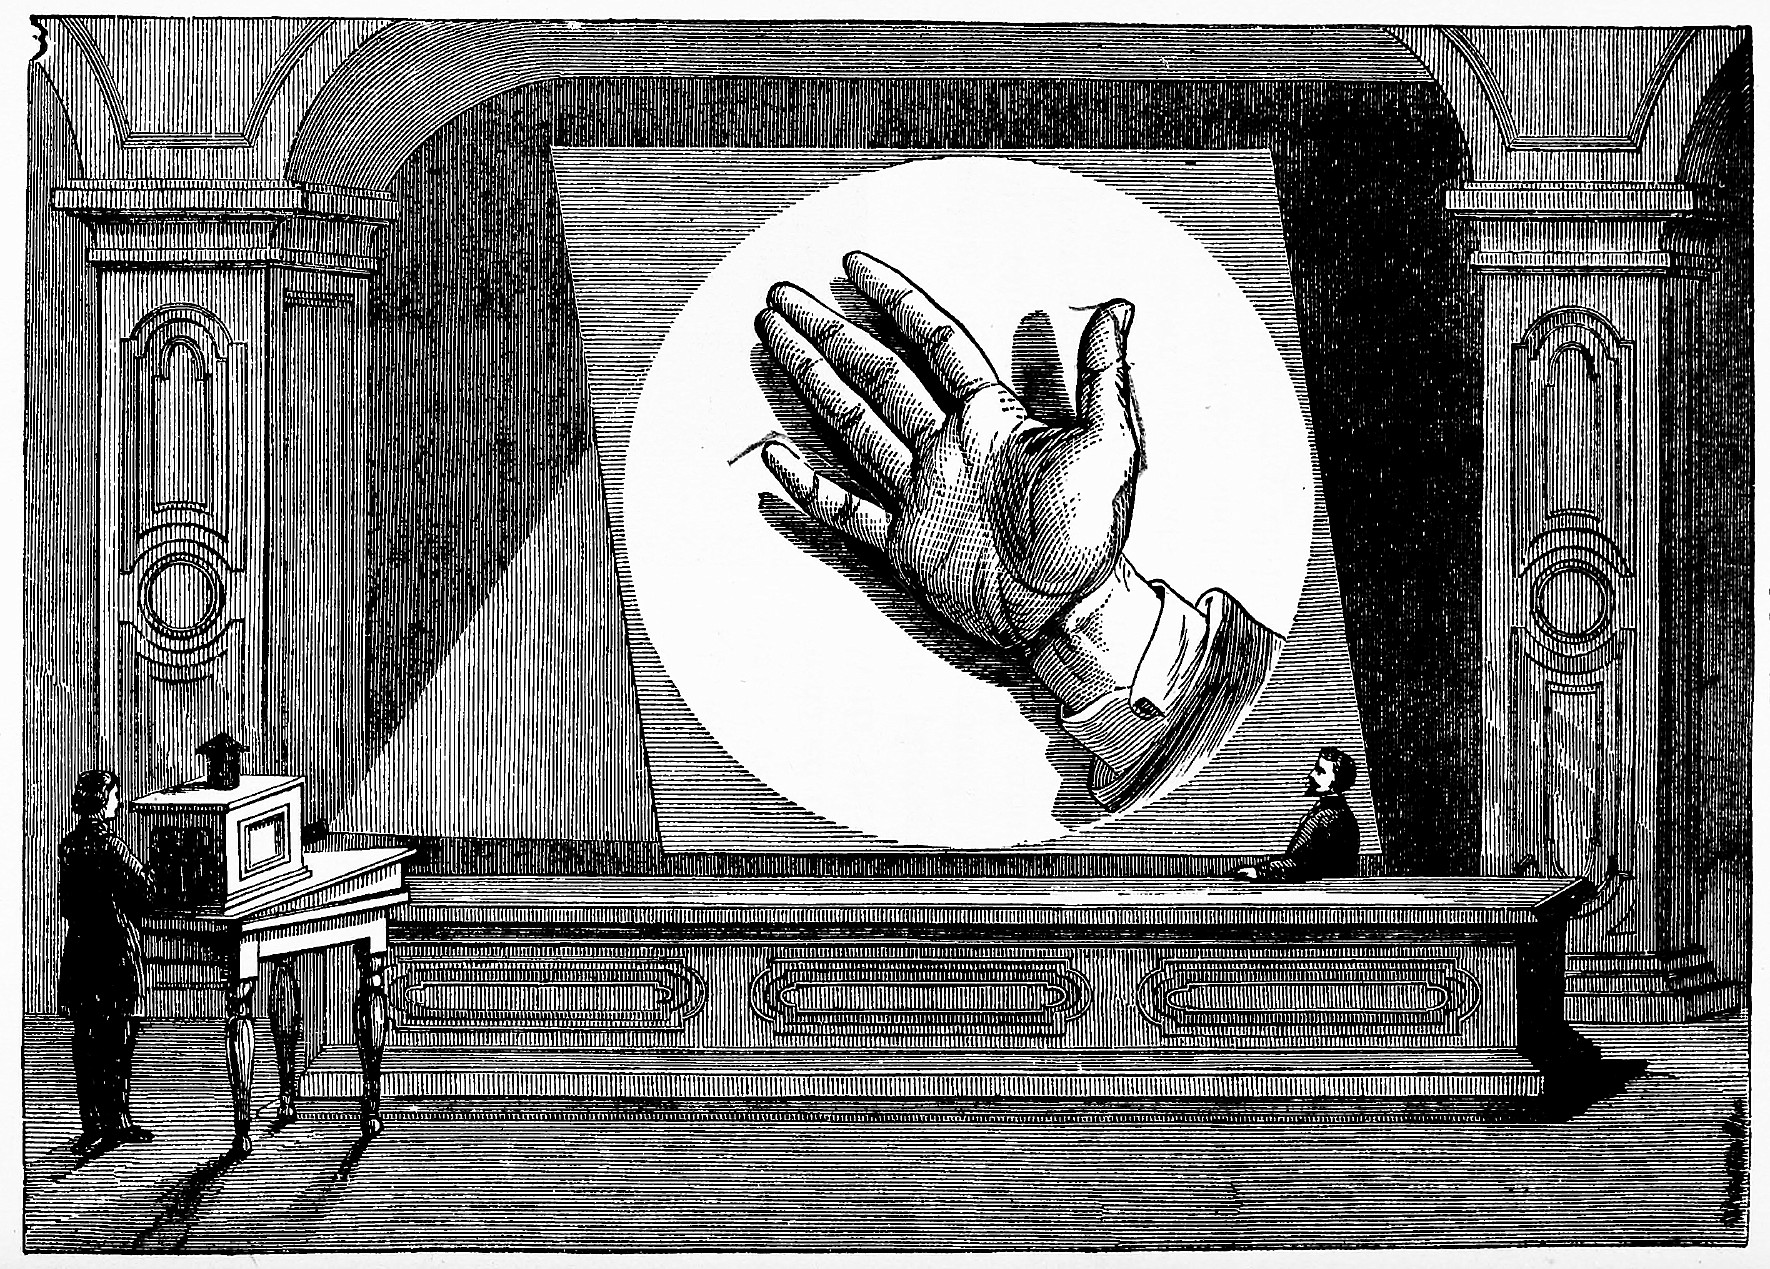 The Megascope, Fig. 24, in A. E. Dolbear: The Art of Projecting. A Manual of Experimentation in Physics, Chemistry, and Natural History with the Porte Lumière and Magic Lantern, 1877.